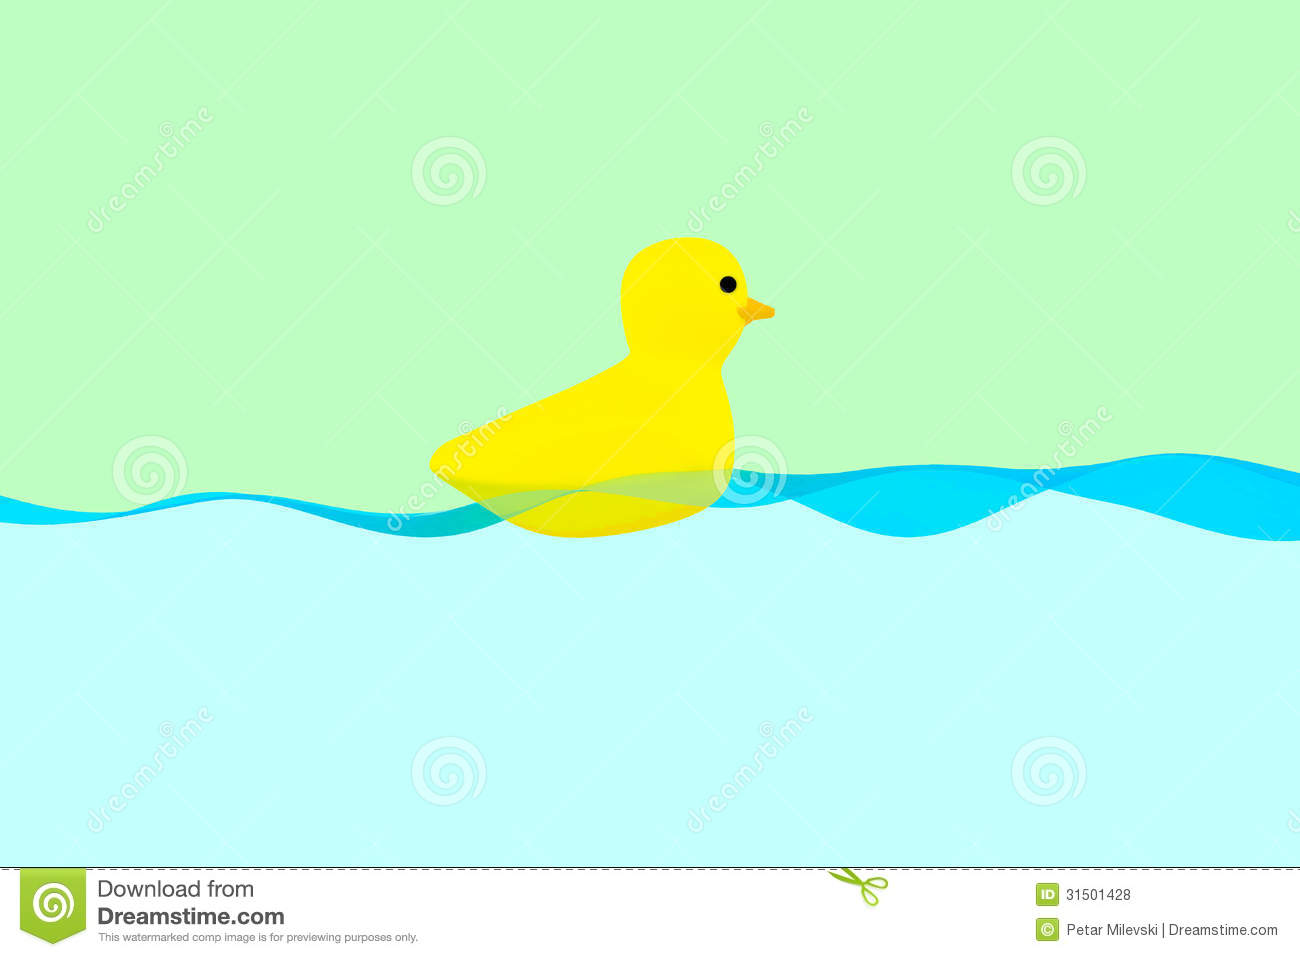 Rubber Ducky Royalty Free Stock Photos Image 31501428